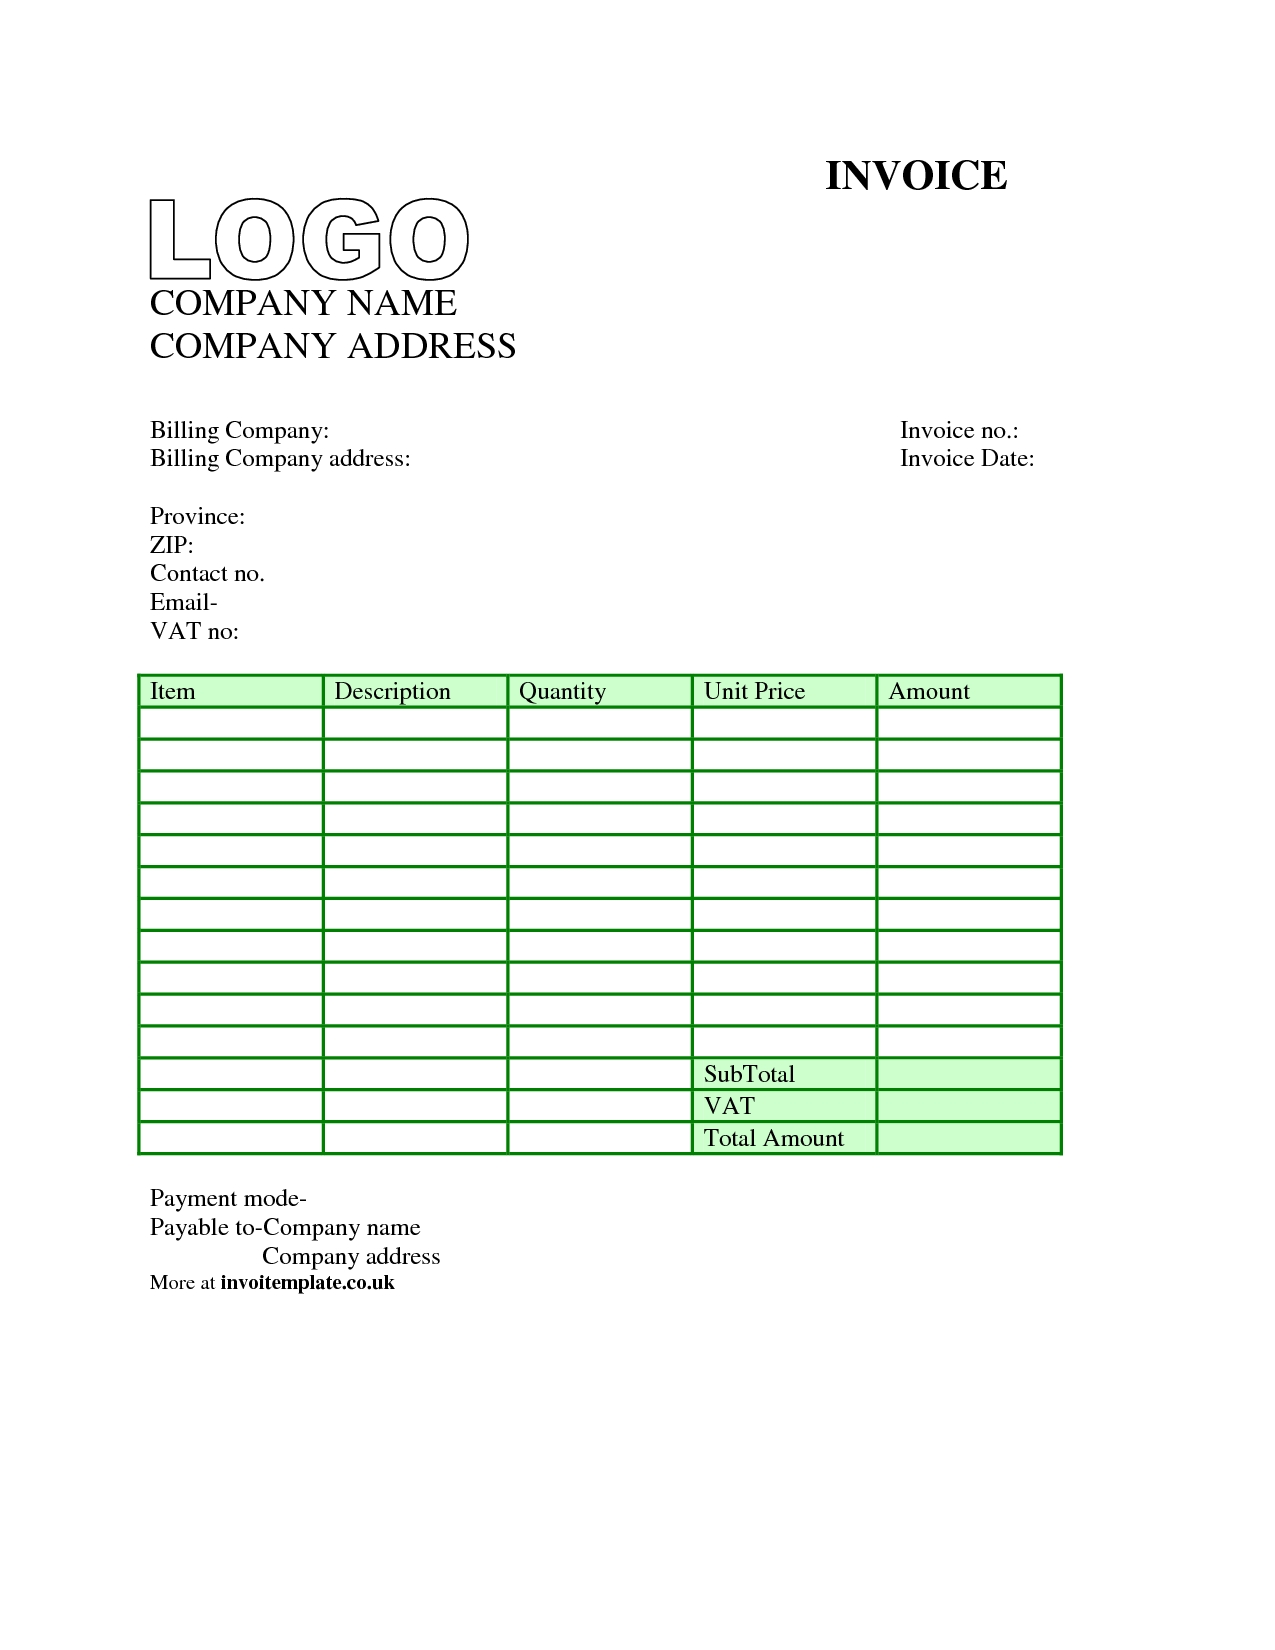 Microsoft Word Invoice Template Free Download salary slip sample – Ms Word Invoice Template Free Download